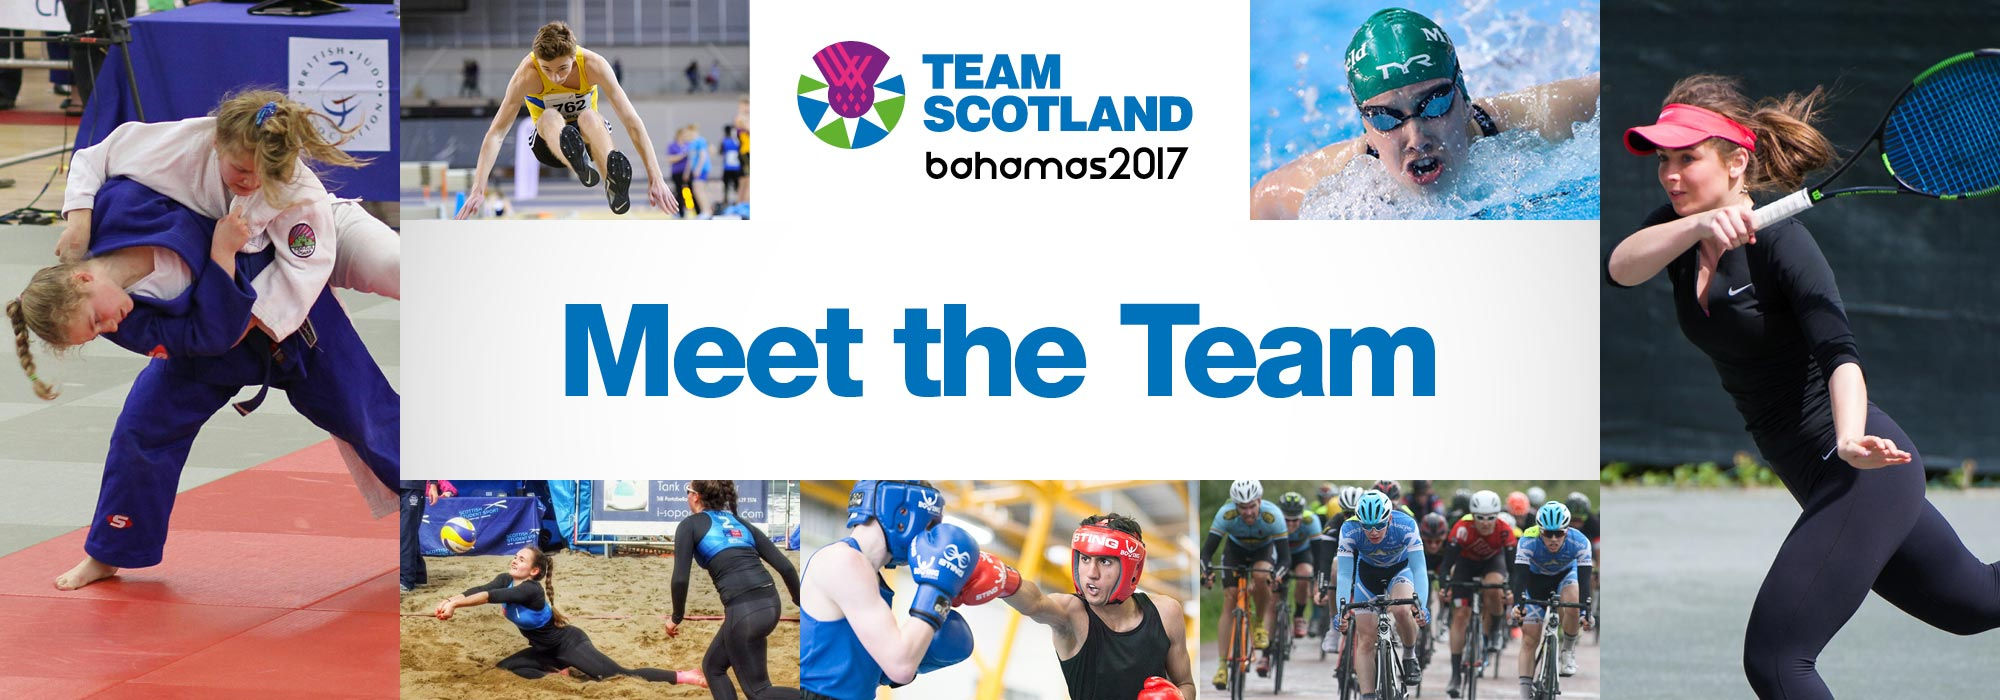 2017 Commonwealth Youth Games, Bahamas. Official Selections